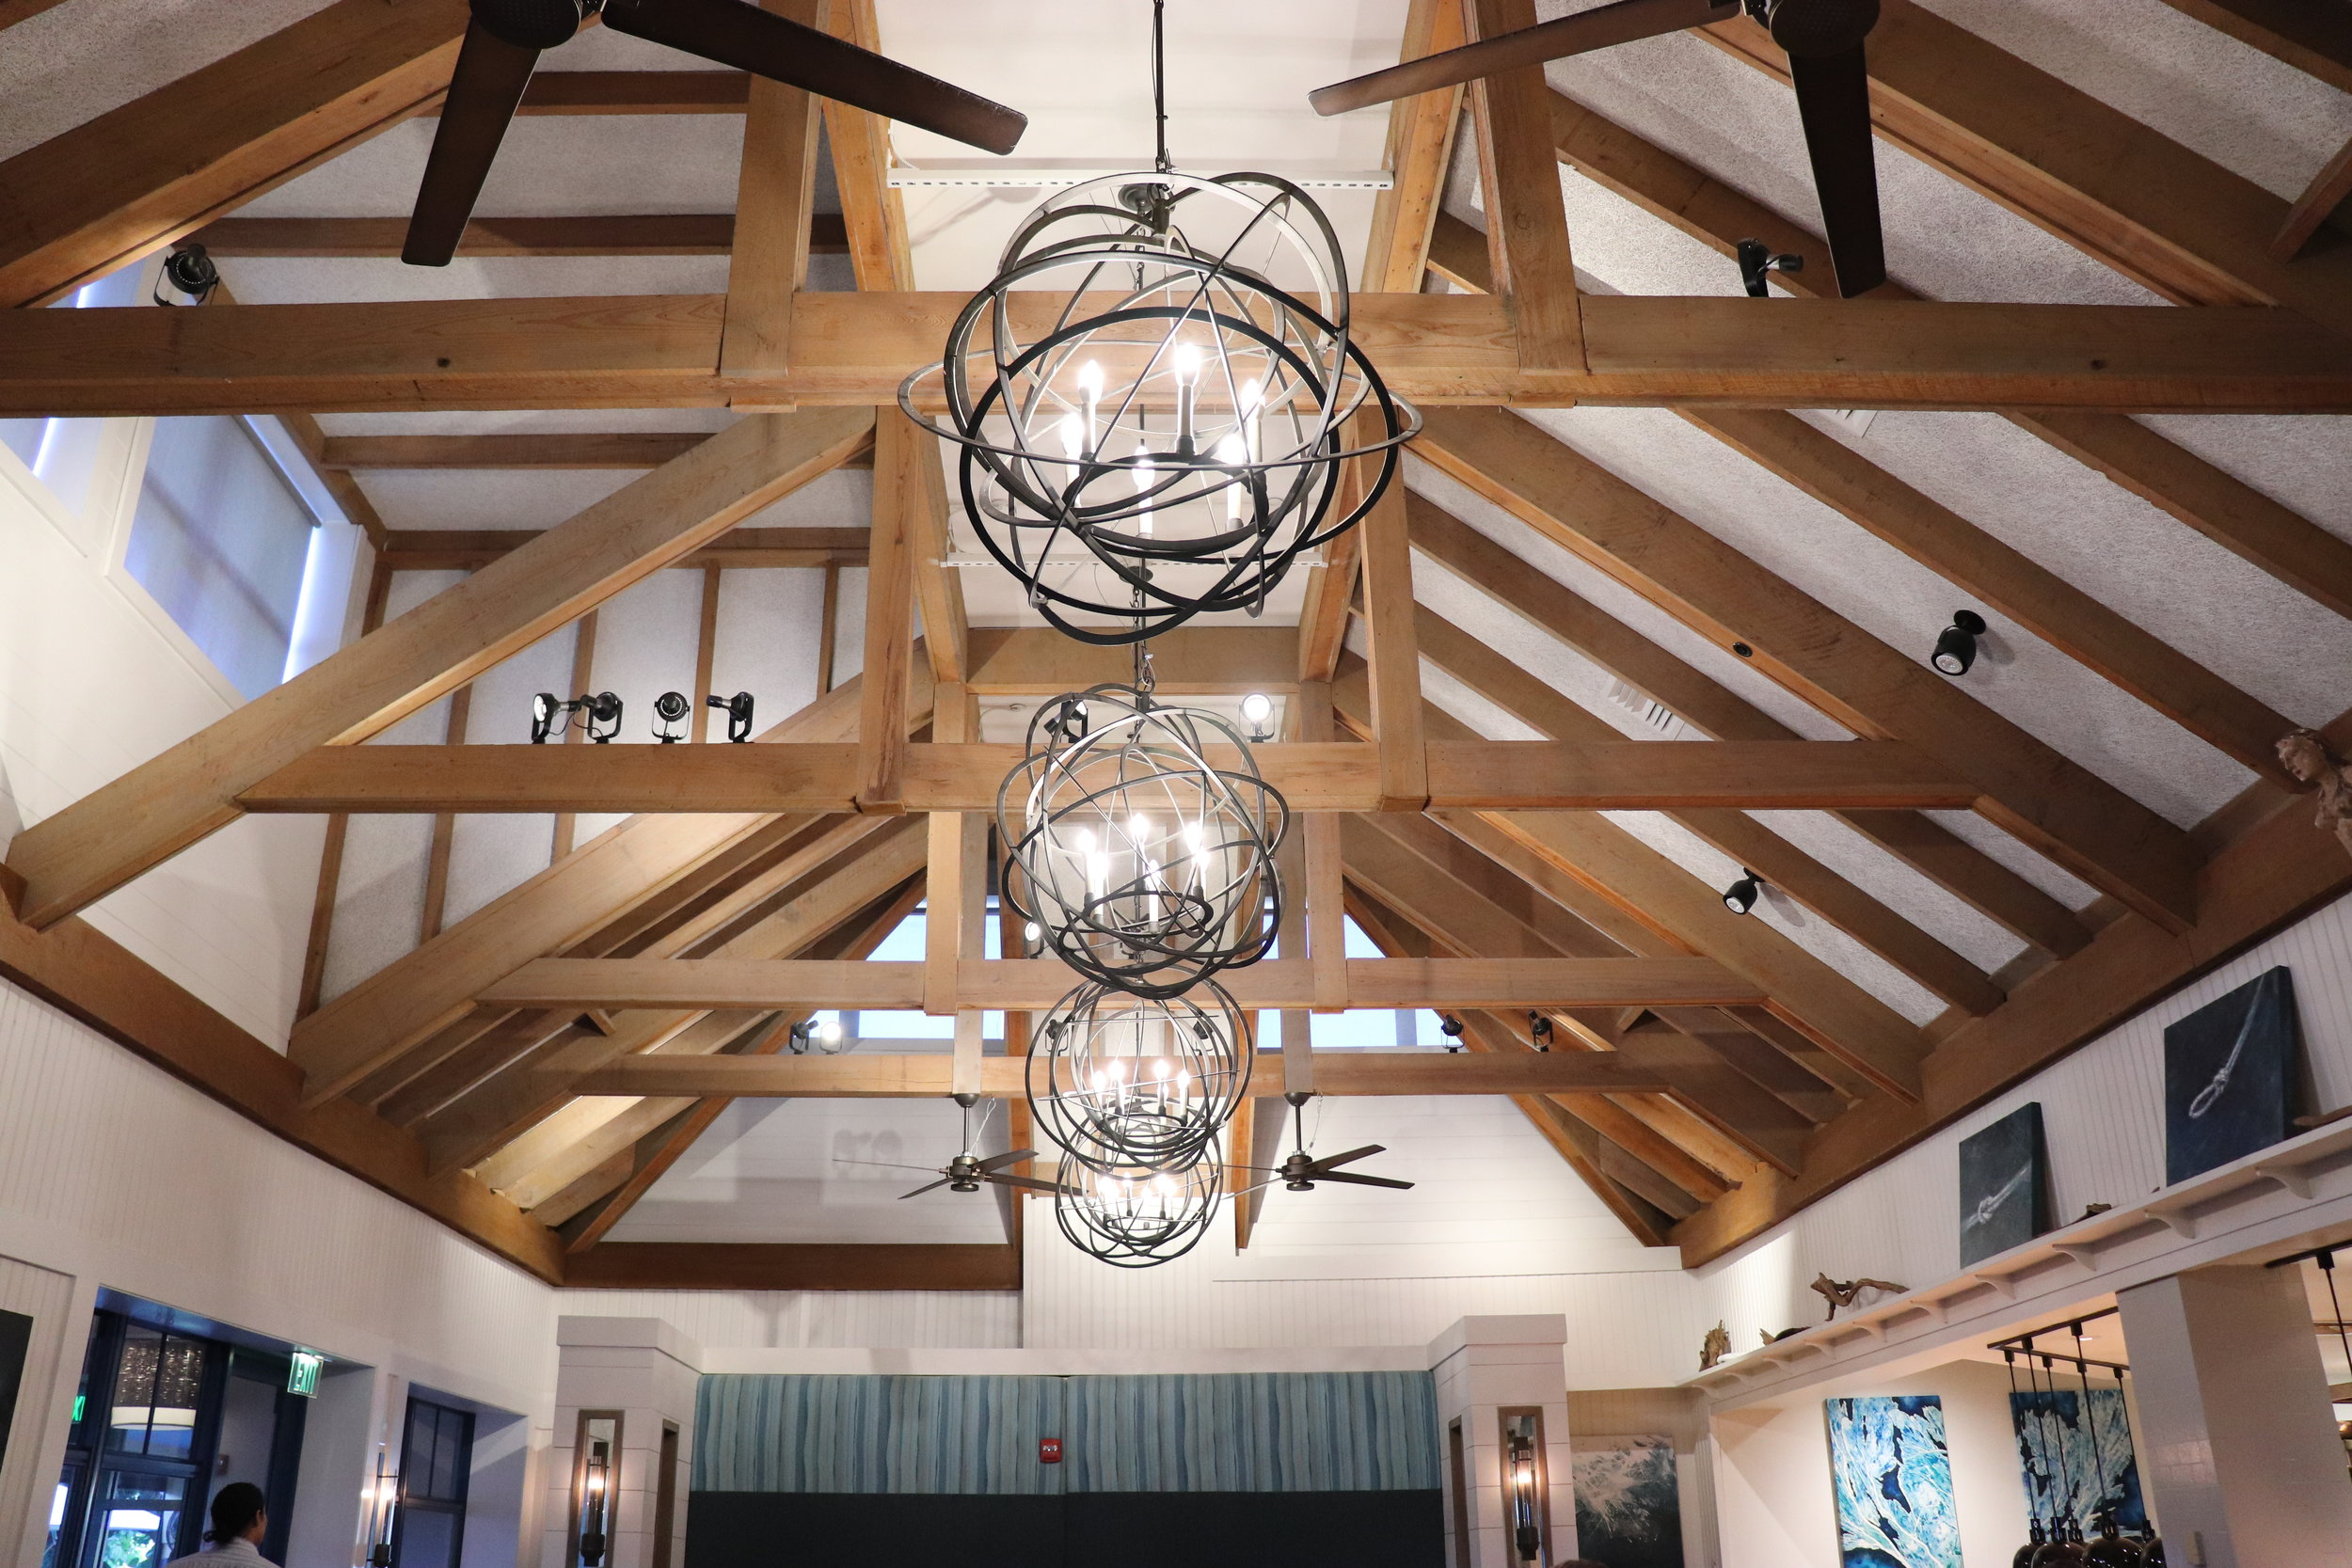 Check out these cool light fixtures and ceiling!